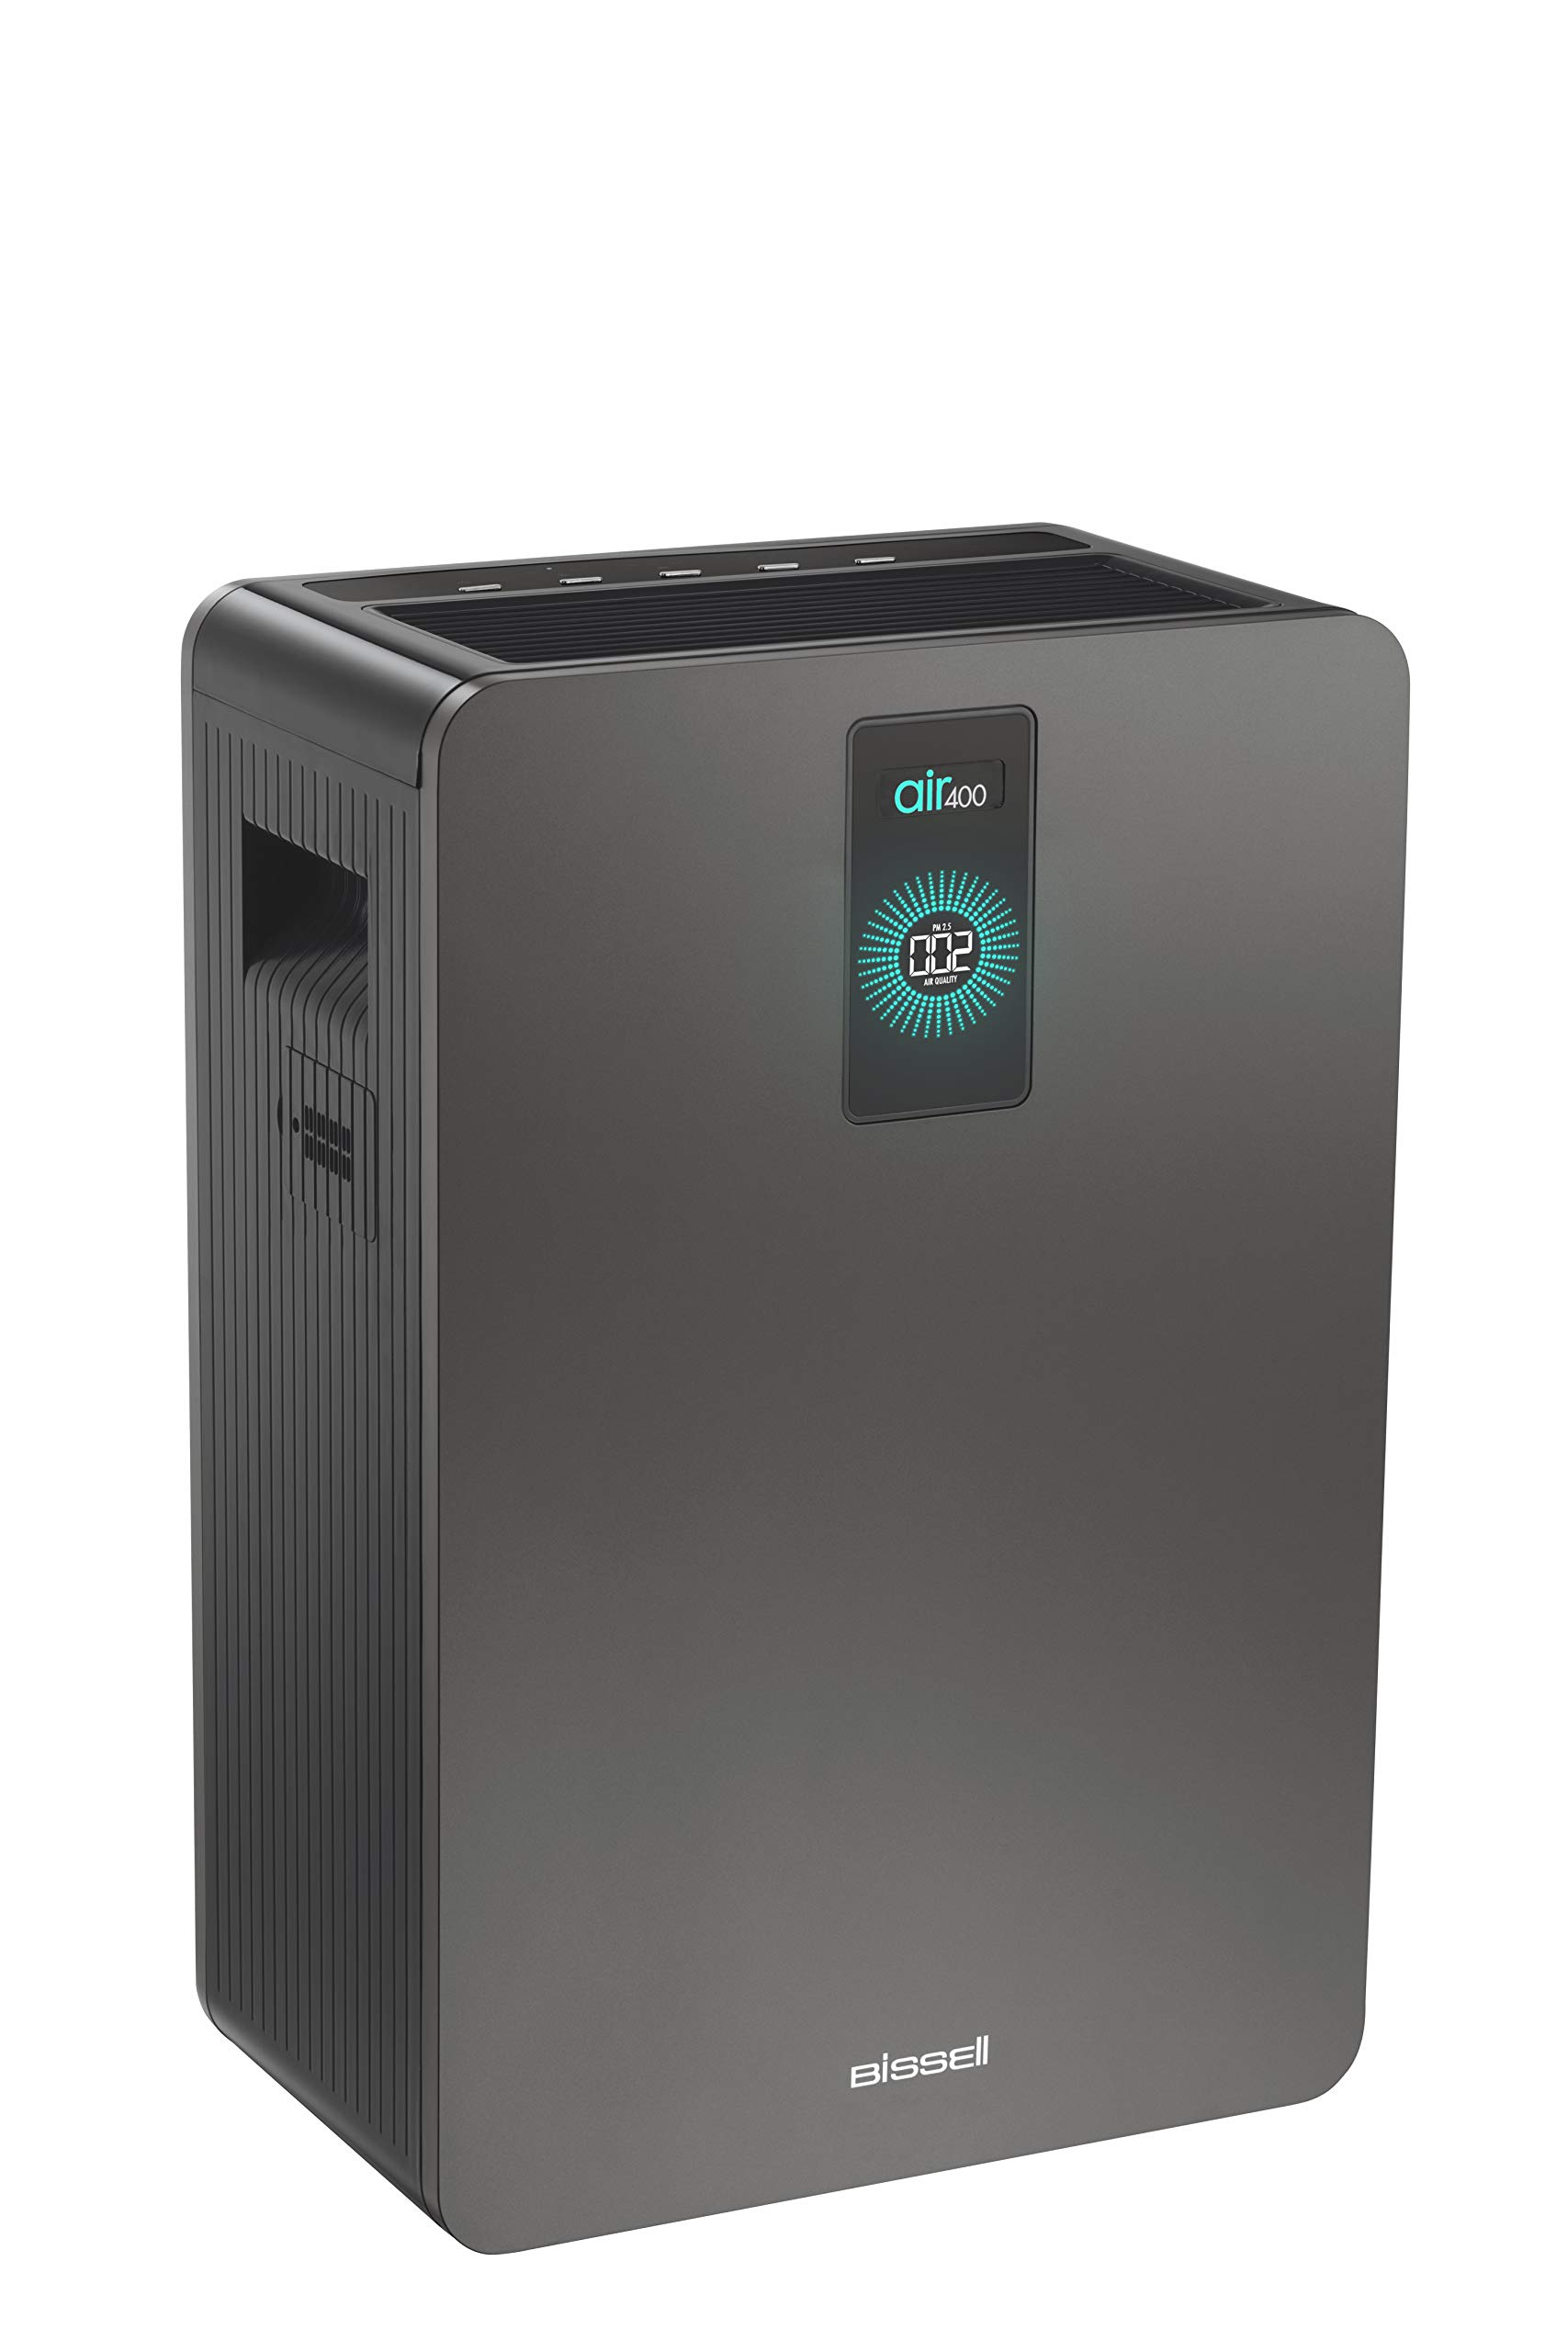 Bissell air400 Smart Purifier with High Efficiency and Carbon Filters for Large Room and Home, Quiet Bedroom Air Cleaner for Allergies, Pets, Dust, Dander, Pollen, Smoke, Hair, Odors, Auto Mode, 24791